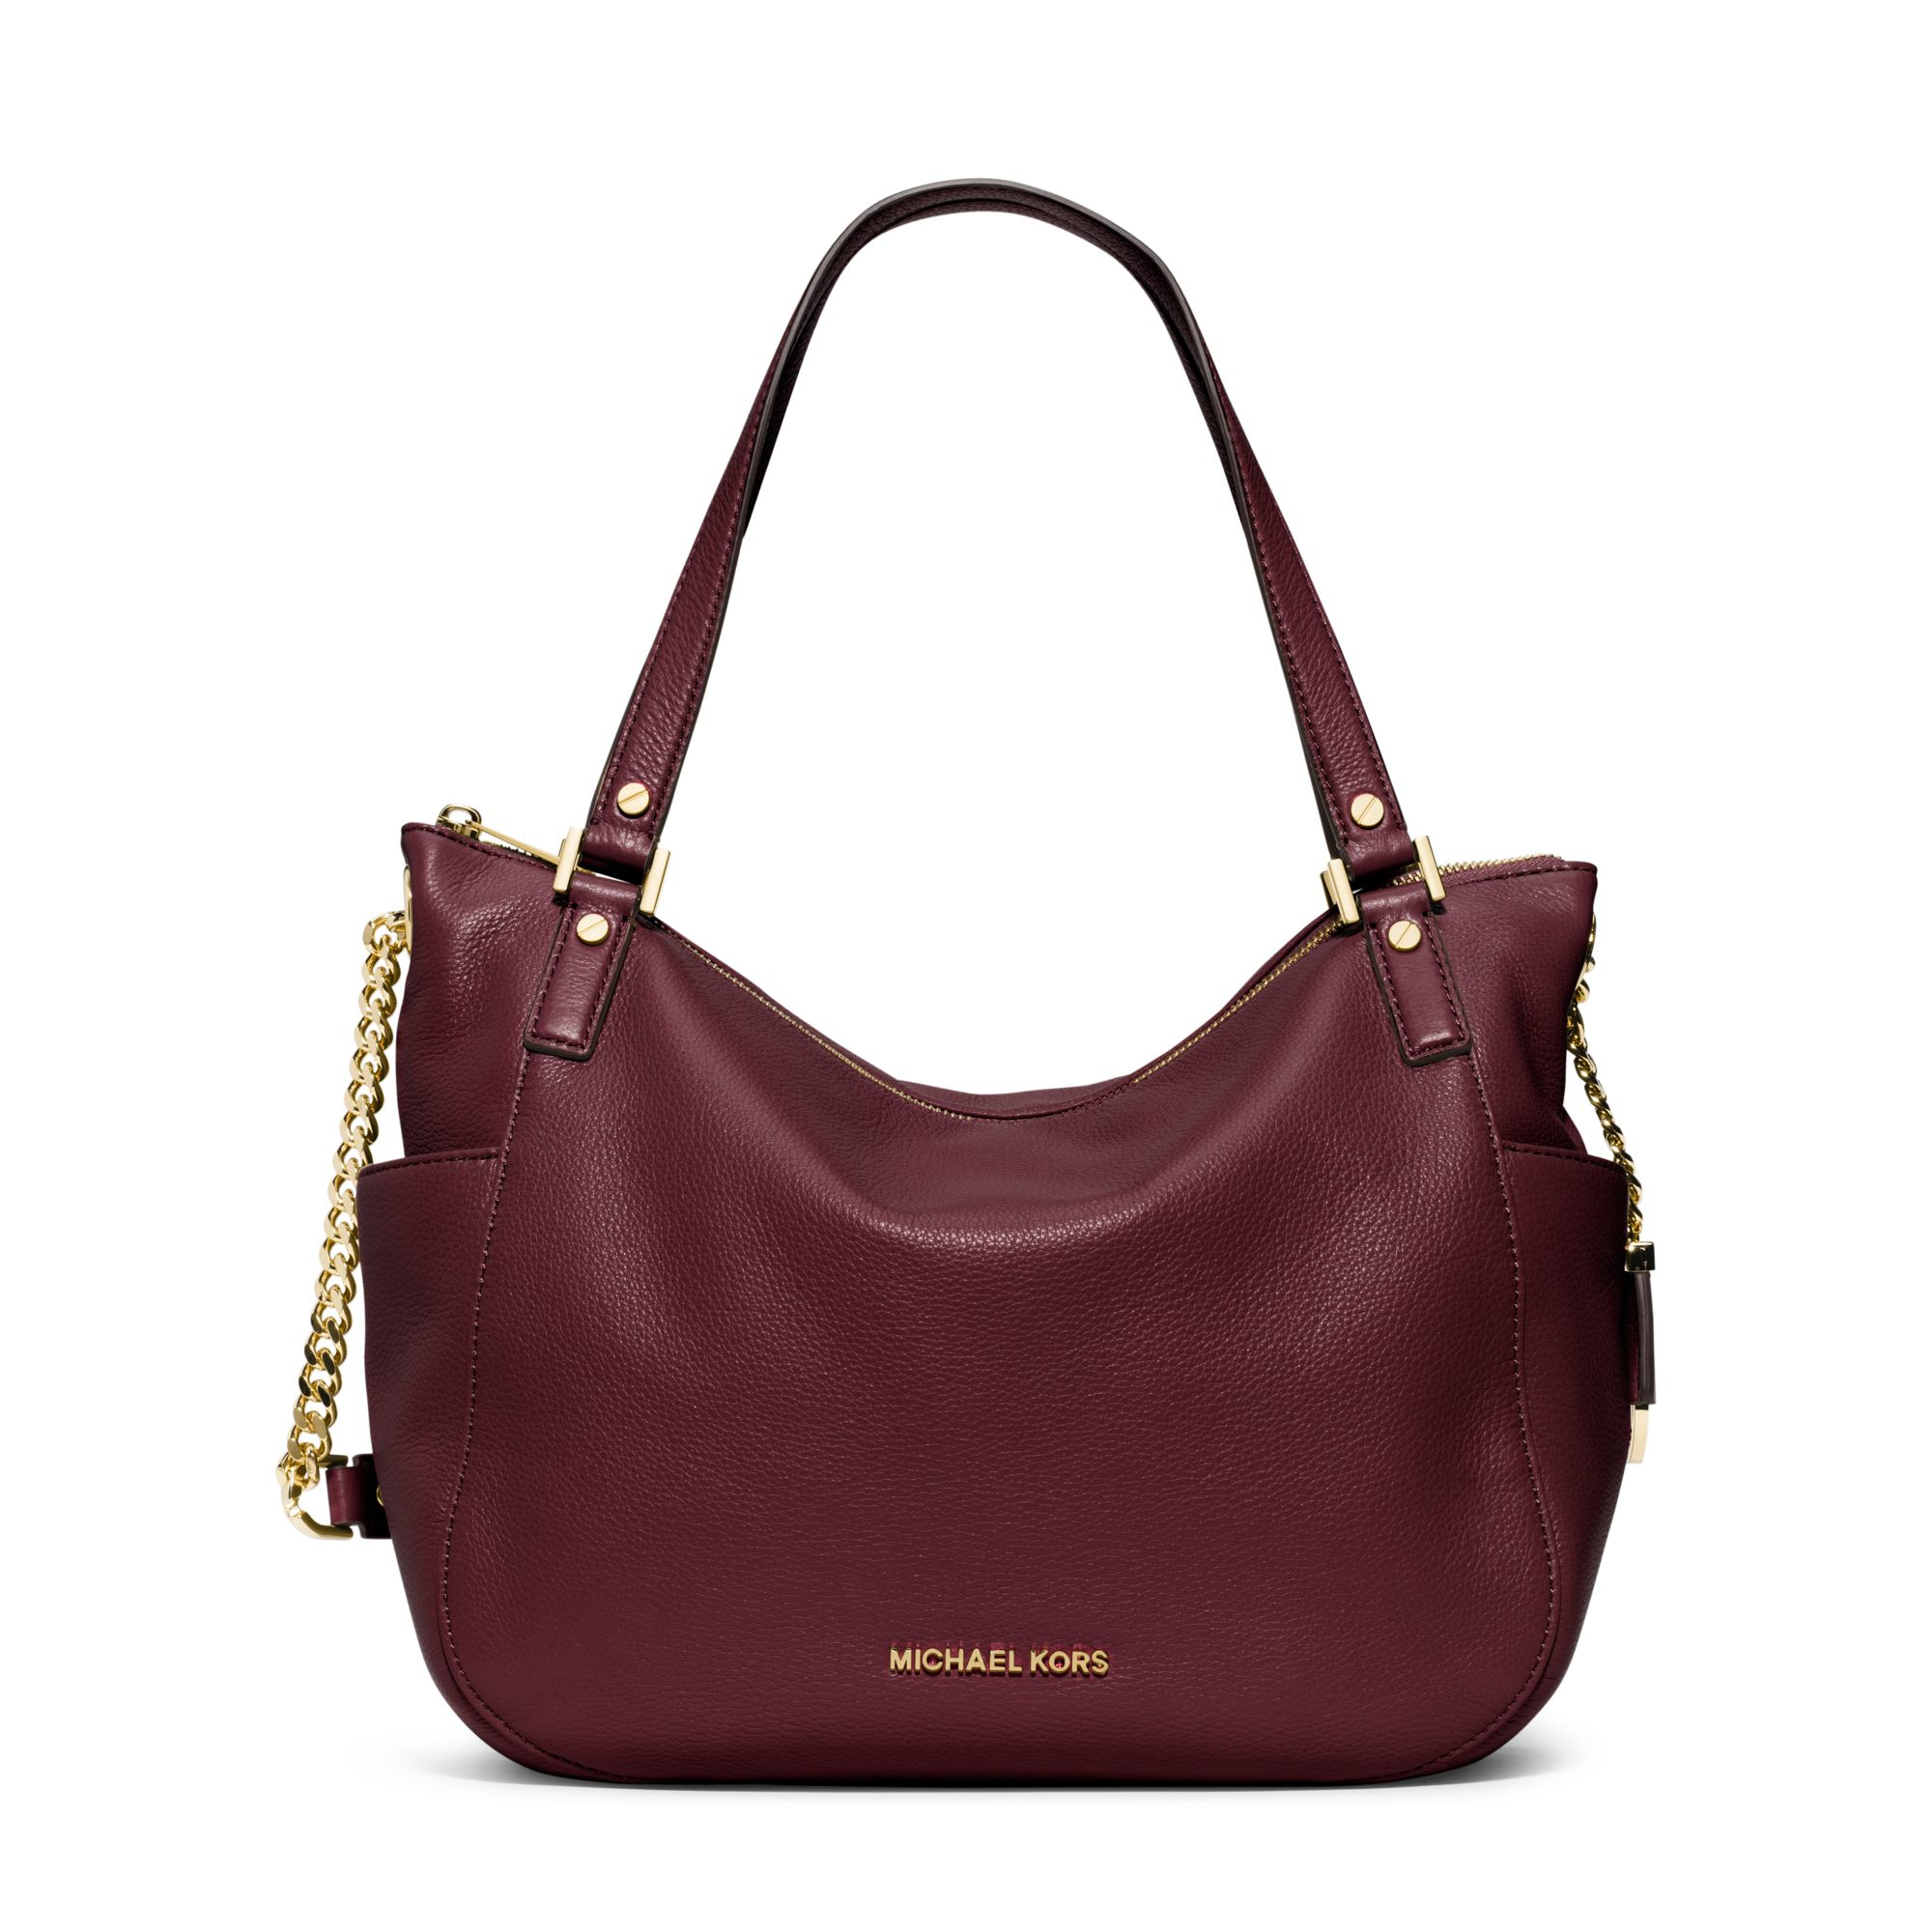 0fb73004854 ... denmark lyst michael kors chandler large leather tote in purple 970c9  4114f